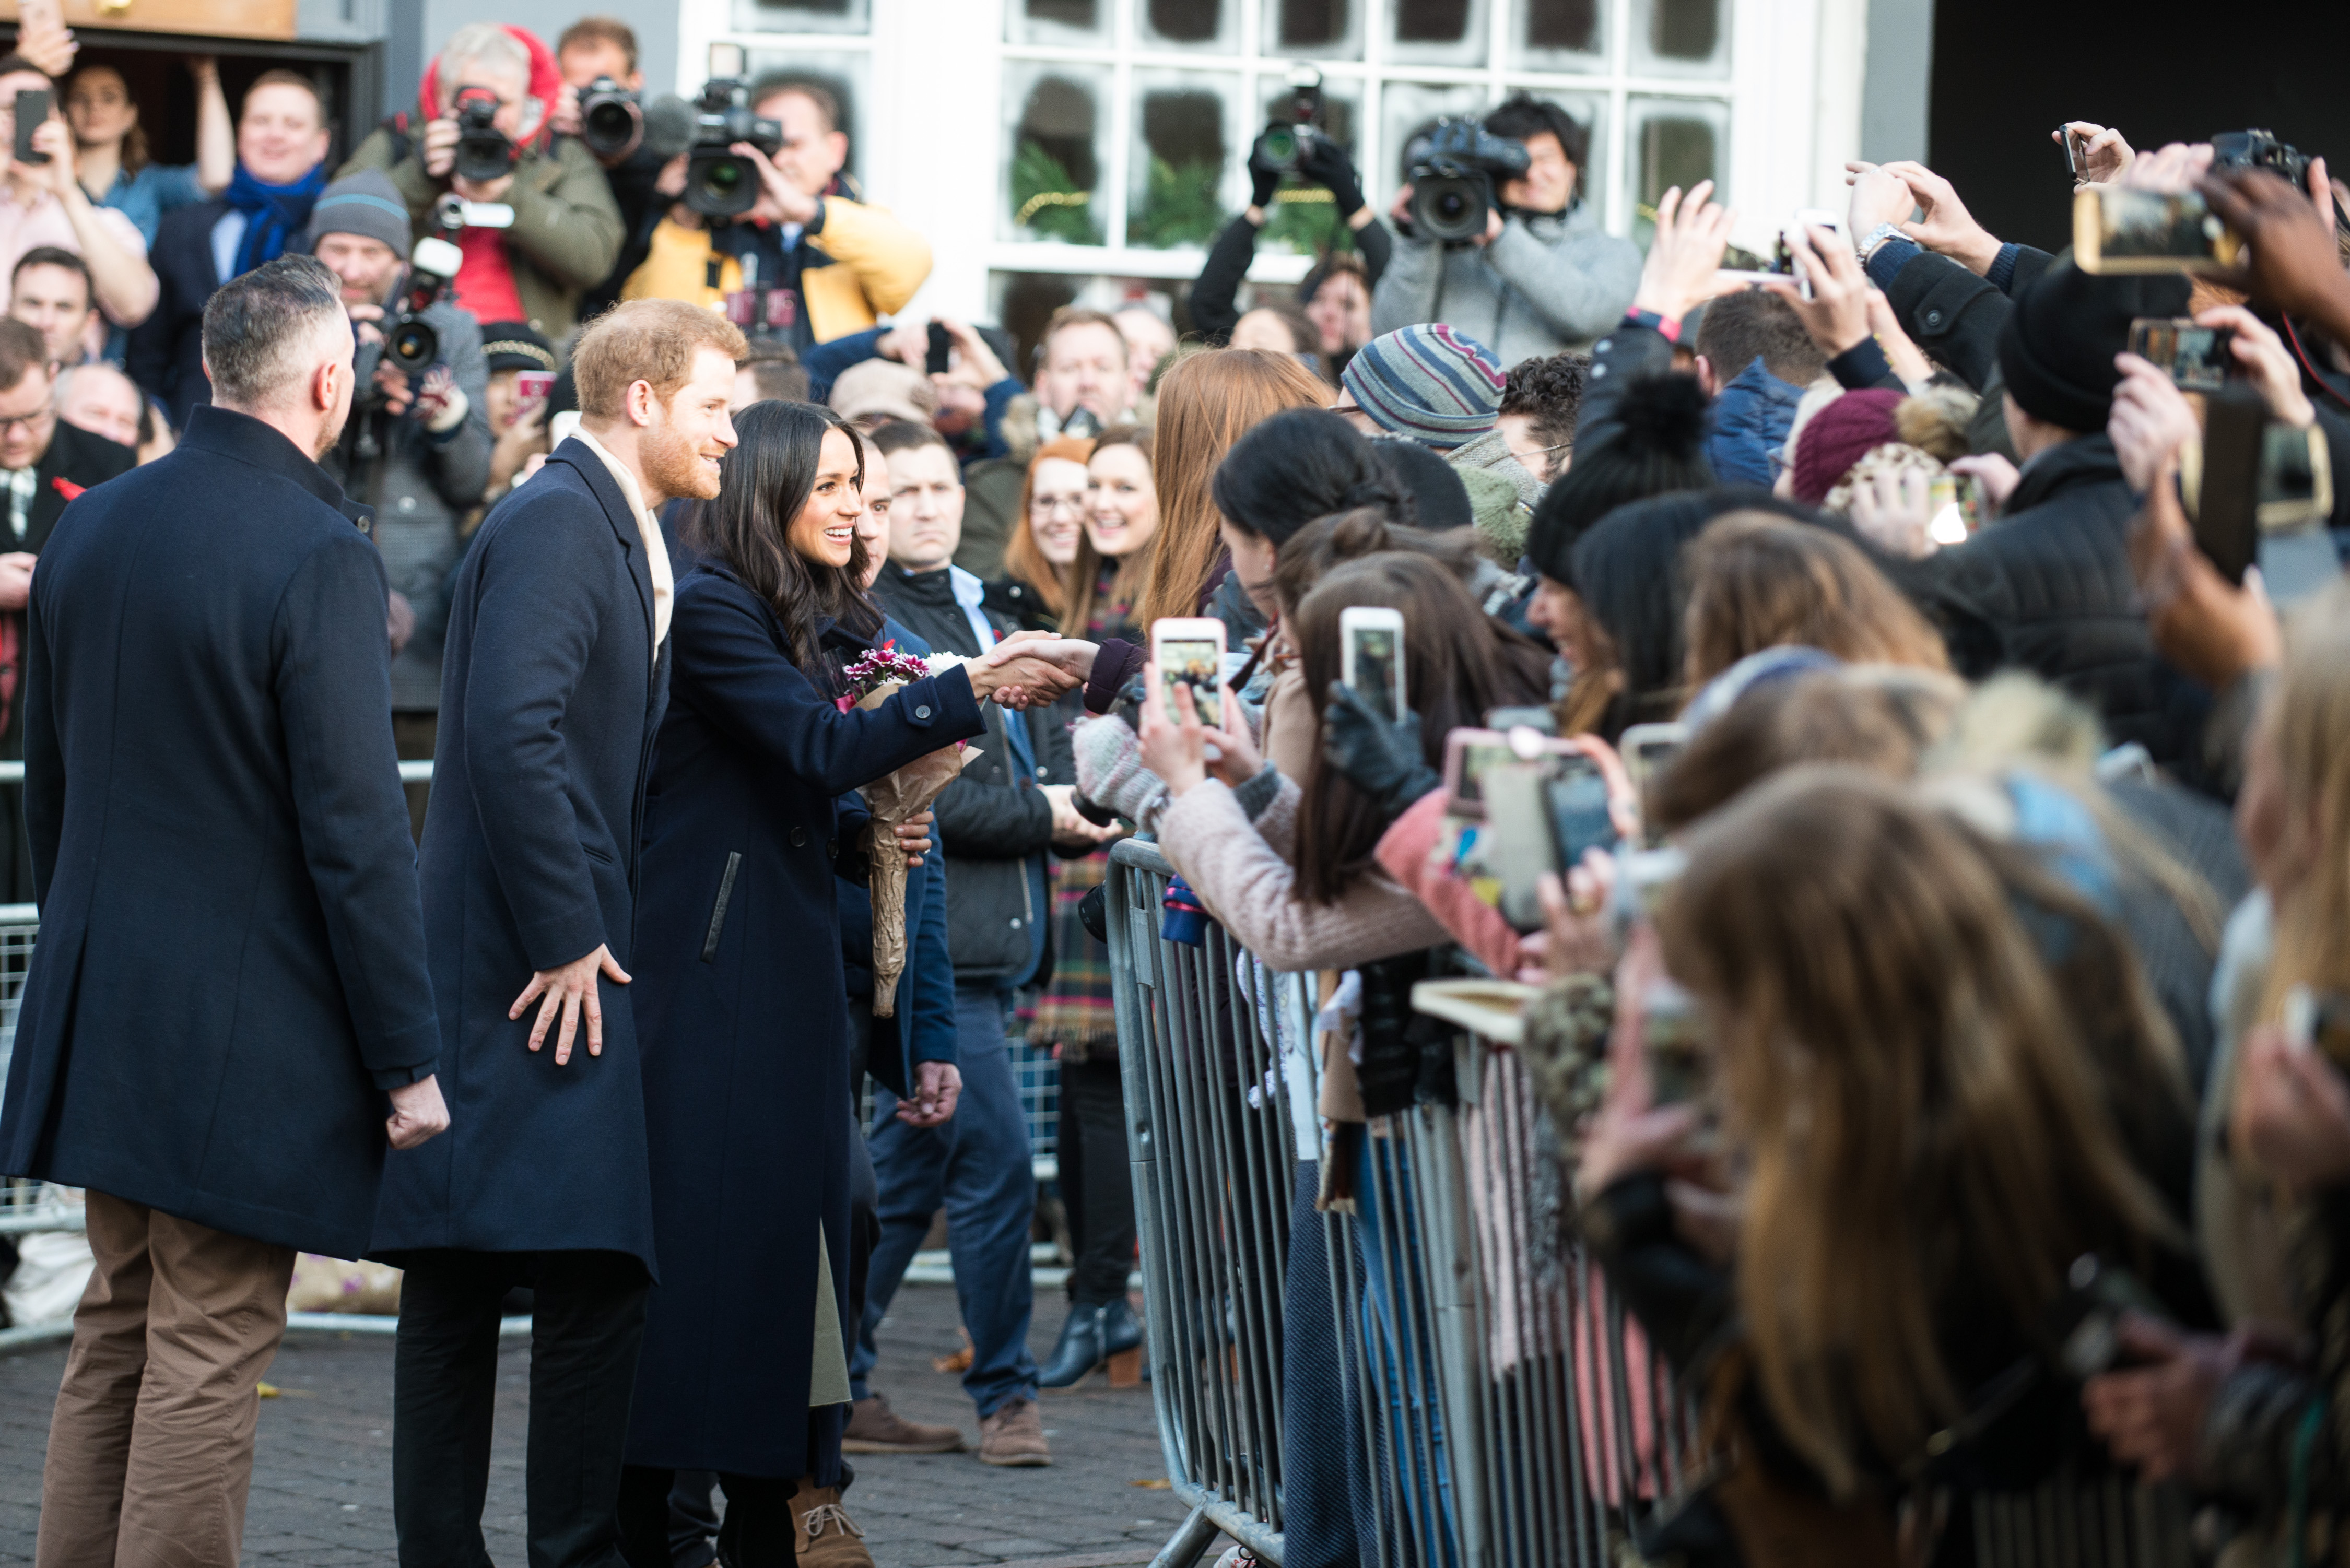 Prince Harry and Meghan Markle meeting onlookers in Nottingham